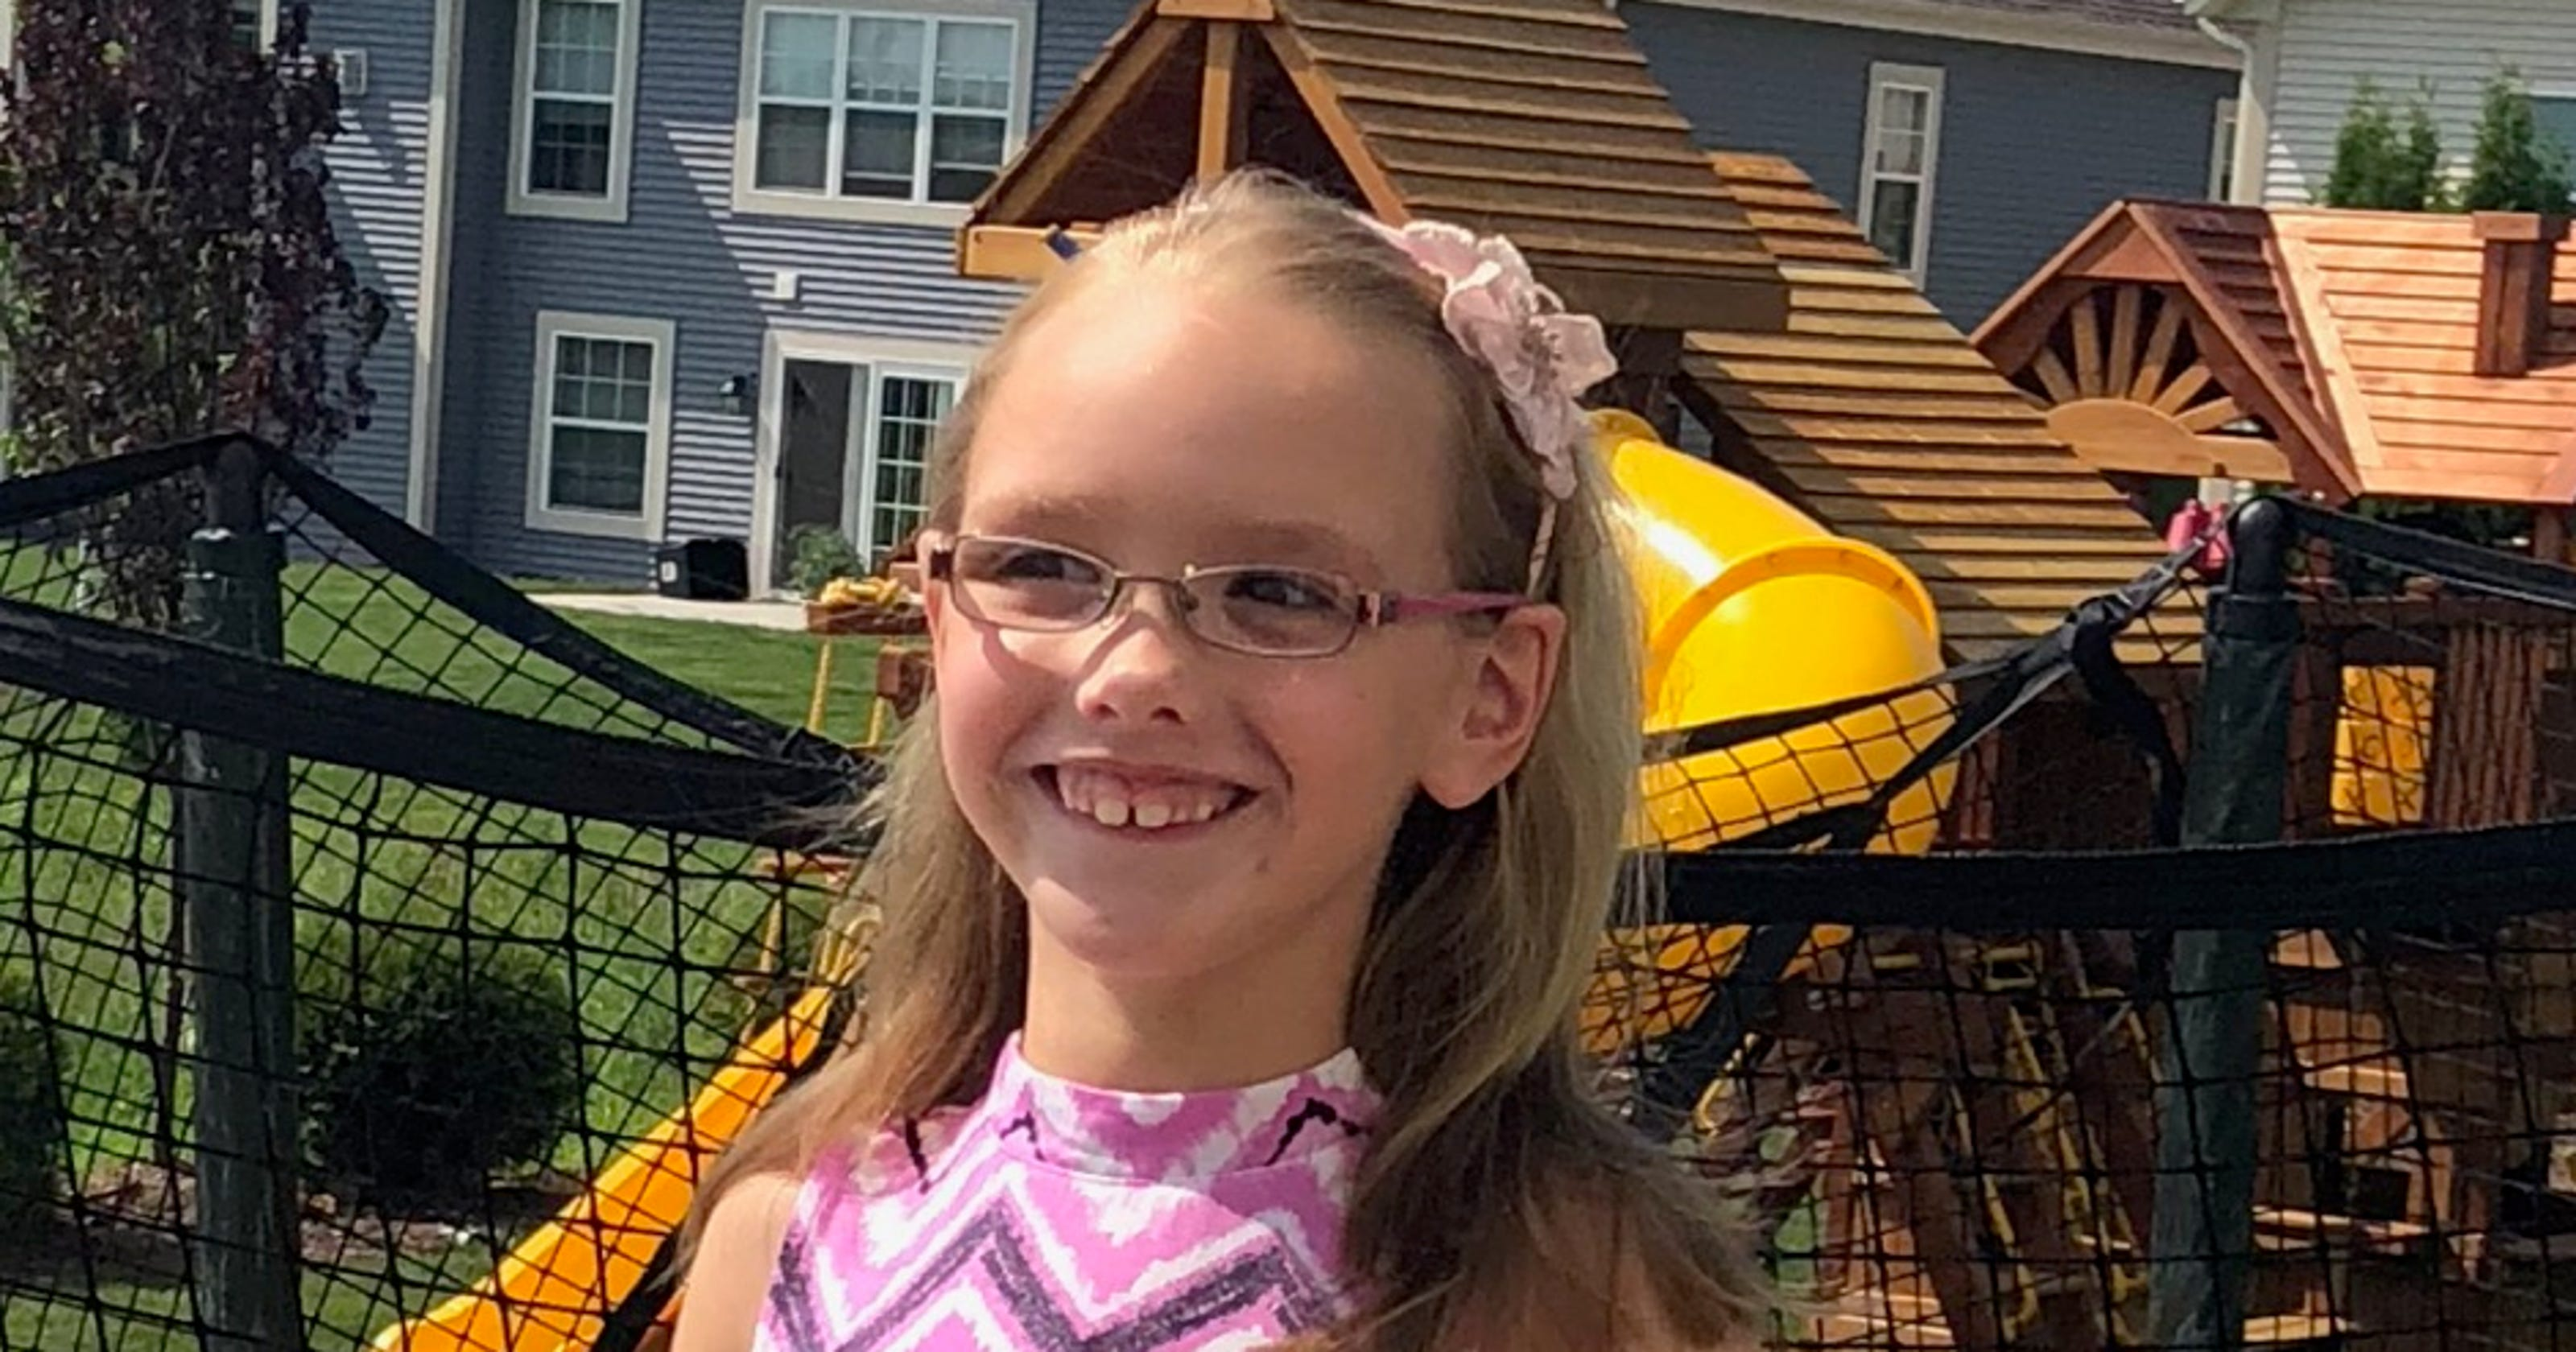 Girl fights infection while legal battle brews over her swing set